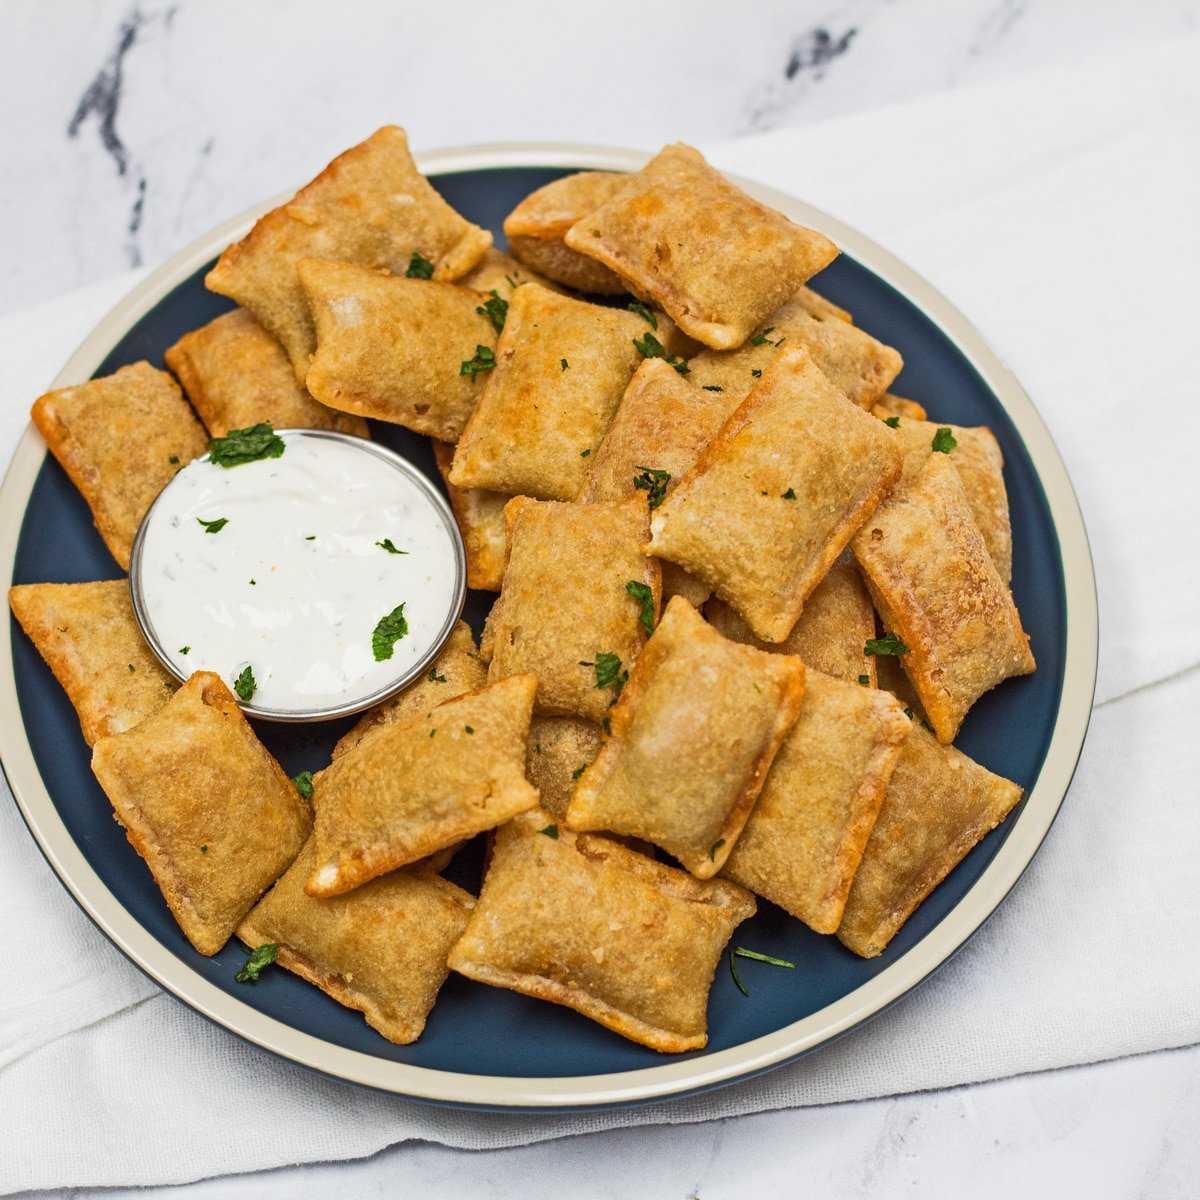 Frozen pizza rolls cooked in the air fryer and served with dipping sauce.